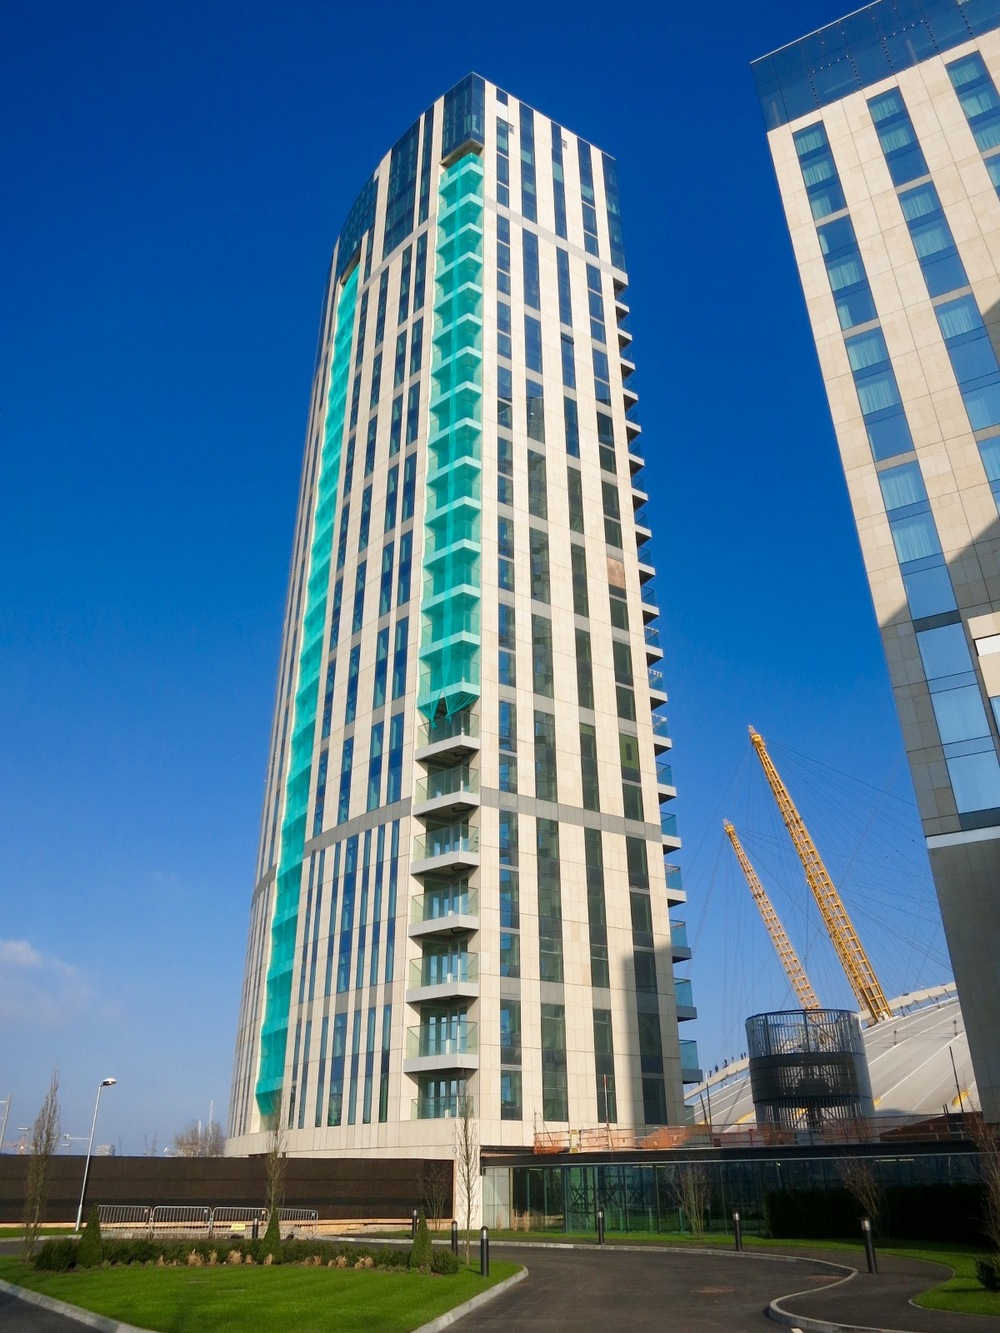 Construction progress on the Arora Tower - March 2016 [greenpenlondon]